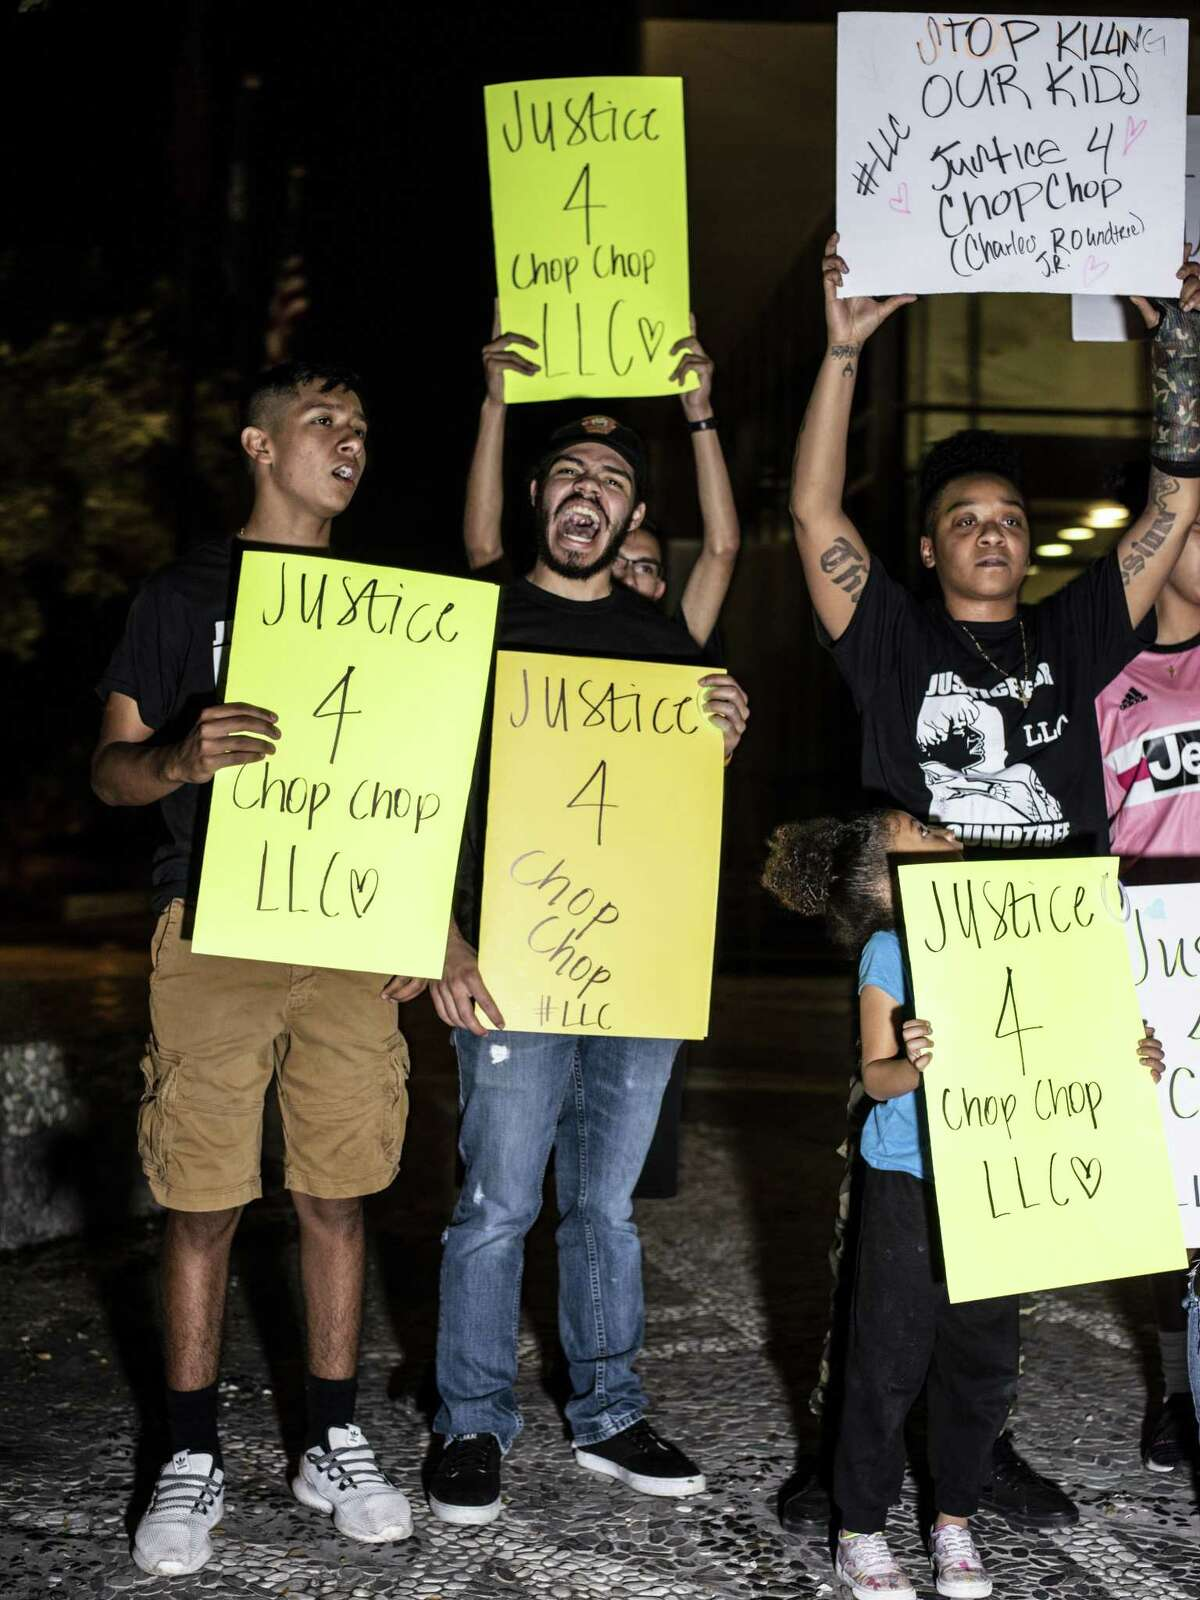 Friends and family of the late Charles Roundtree Jr. hold signs during a protest outside of the San Antonio Police's Public Safety Headquarters on Friday, October 26, 2018. The protest is being held to call attention to the death of 18-year-old Charles